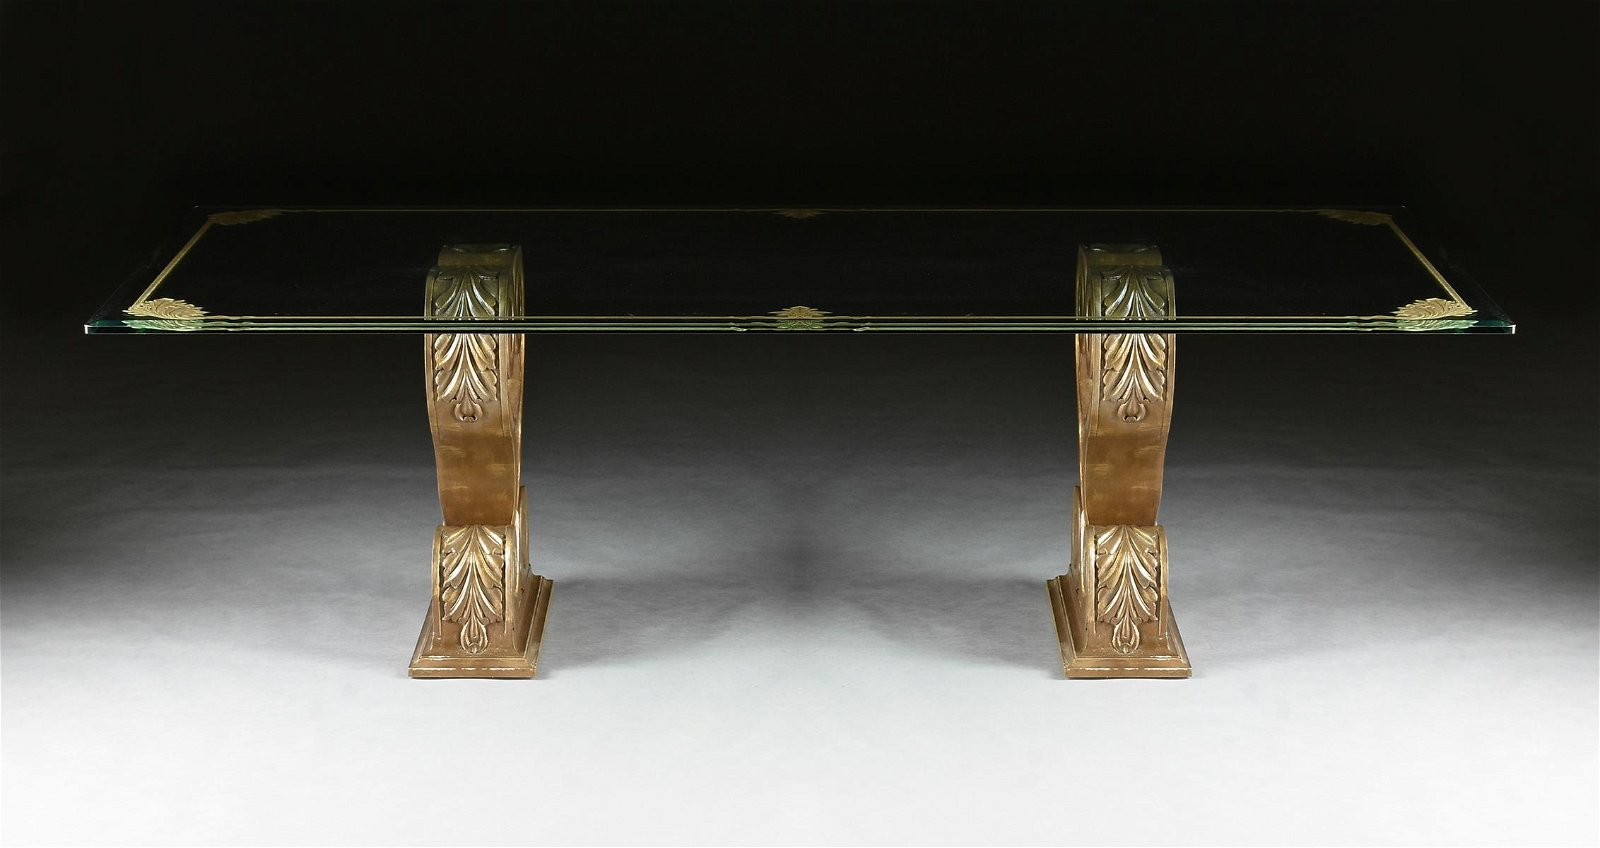 A HOLLYWOOD REGENCY STYLE GILT ETCHED GLASS TOP DUAL